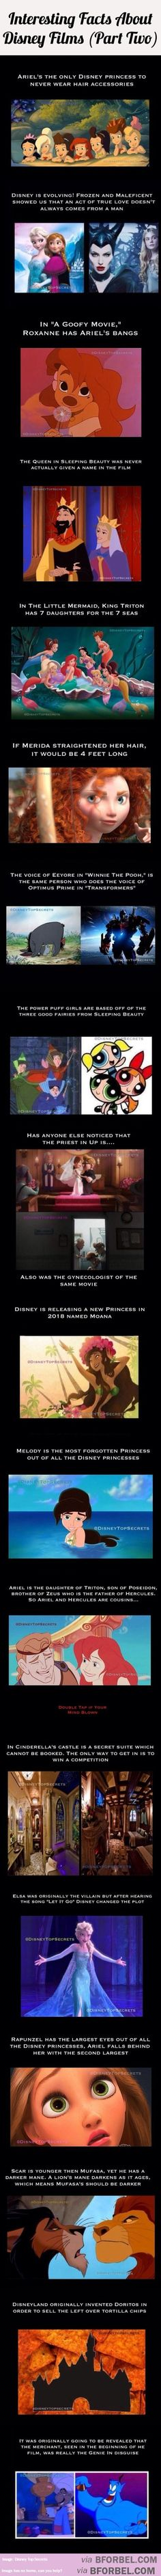 19 Interesting Facts About Disney Films…